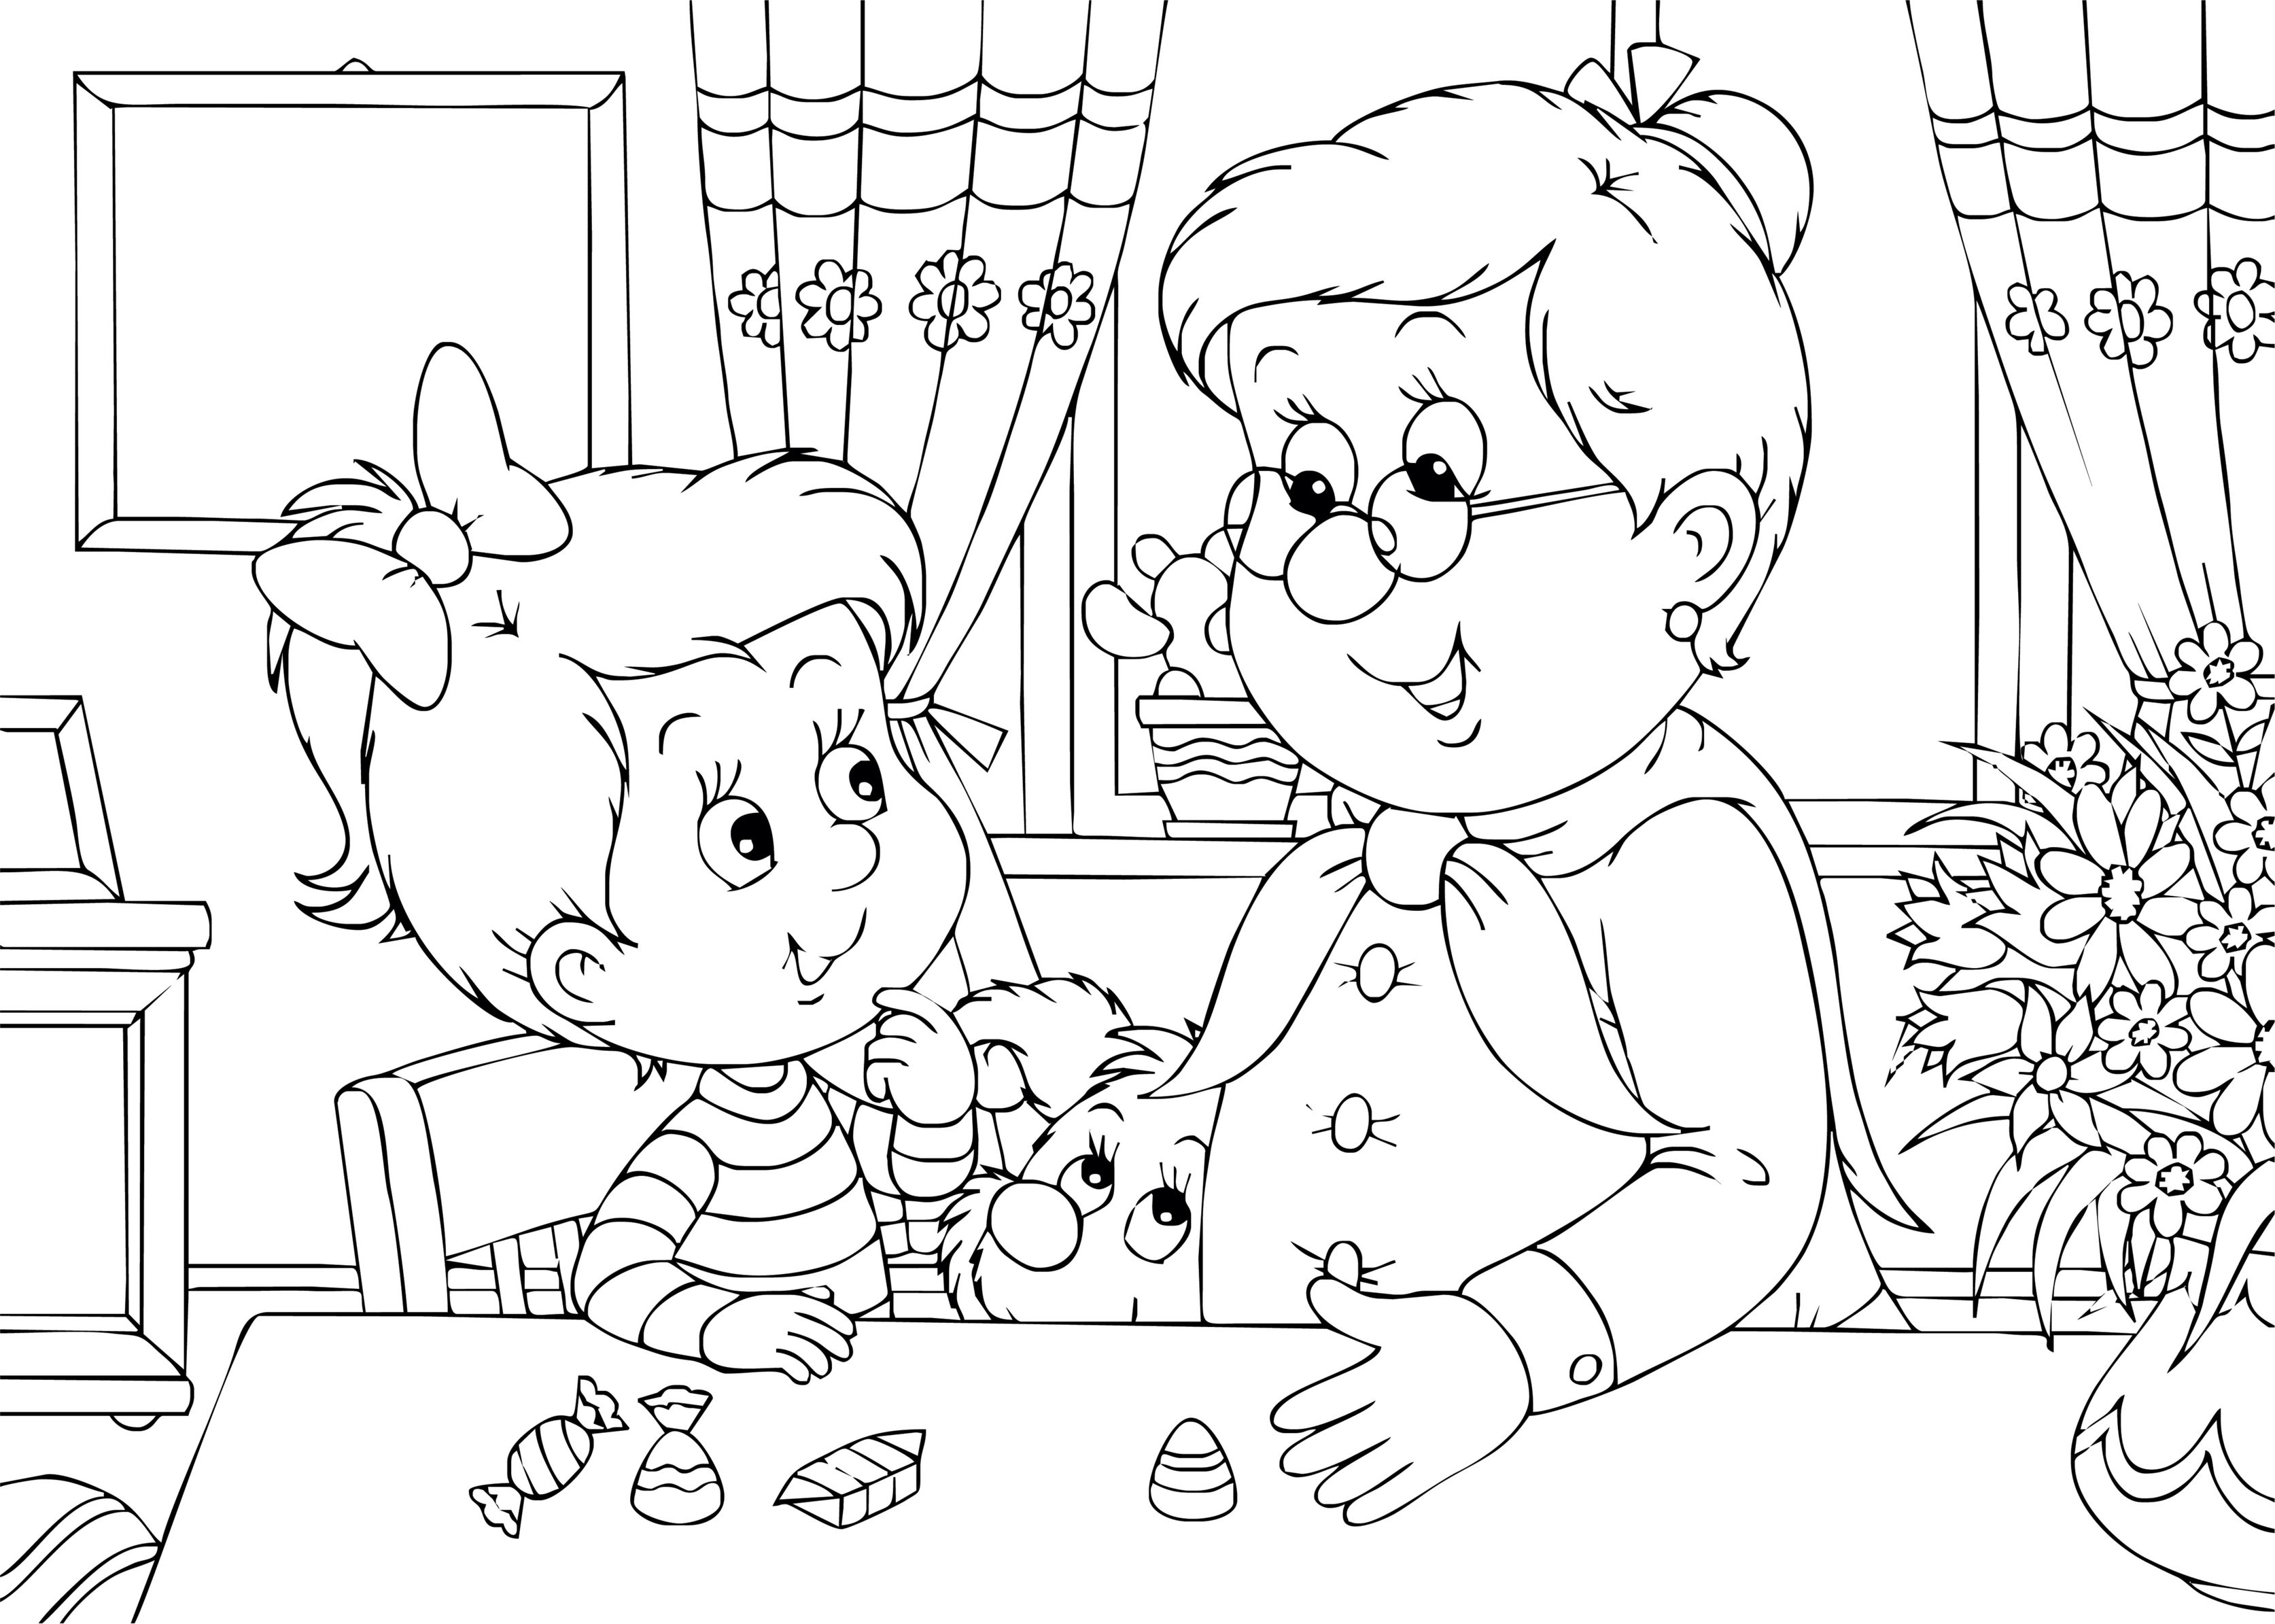 I Love You Grandma and Grandpa Coloring Pages, Thank You